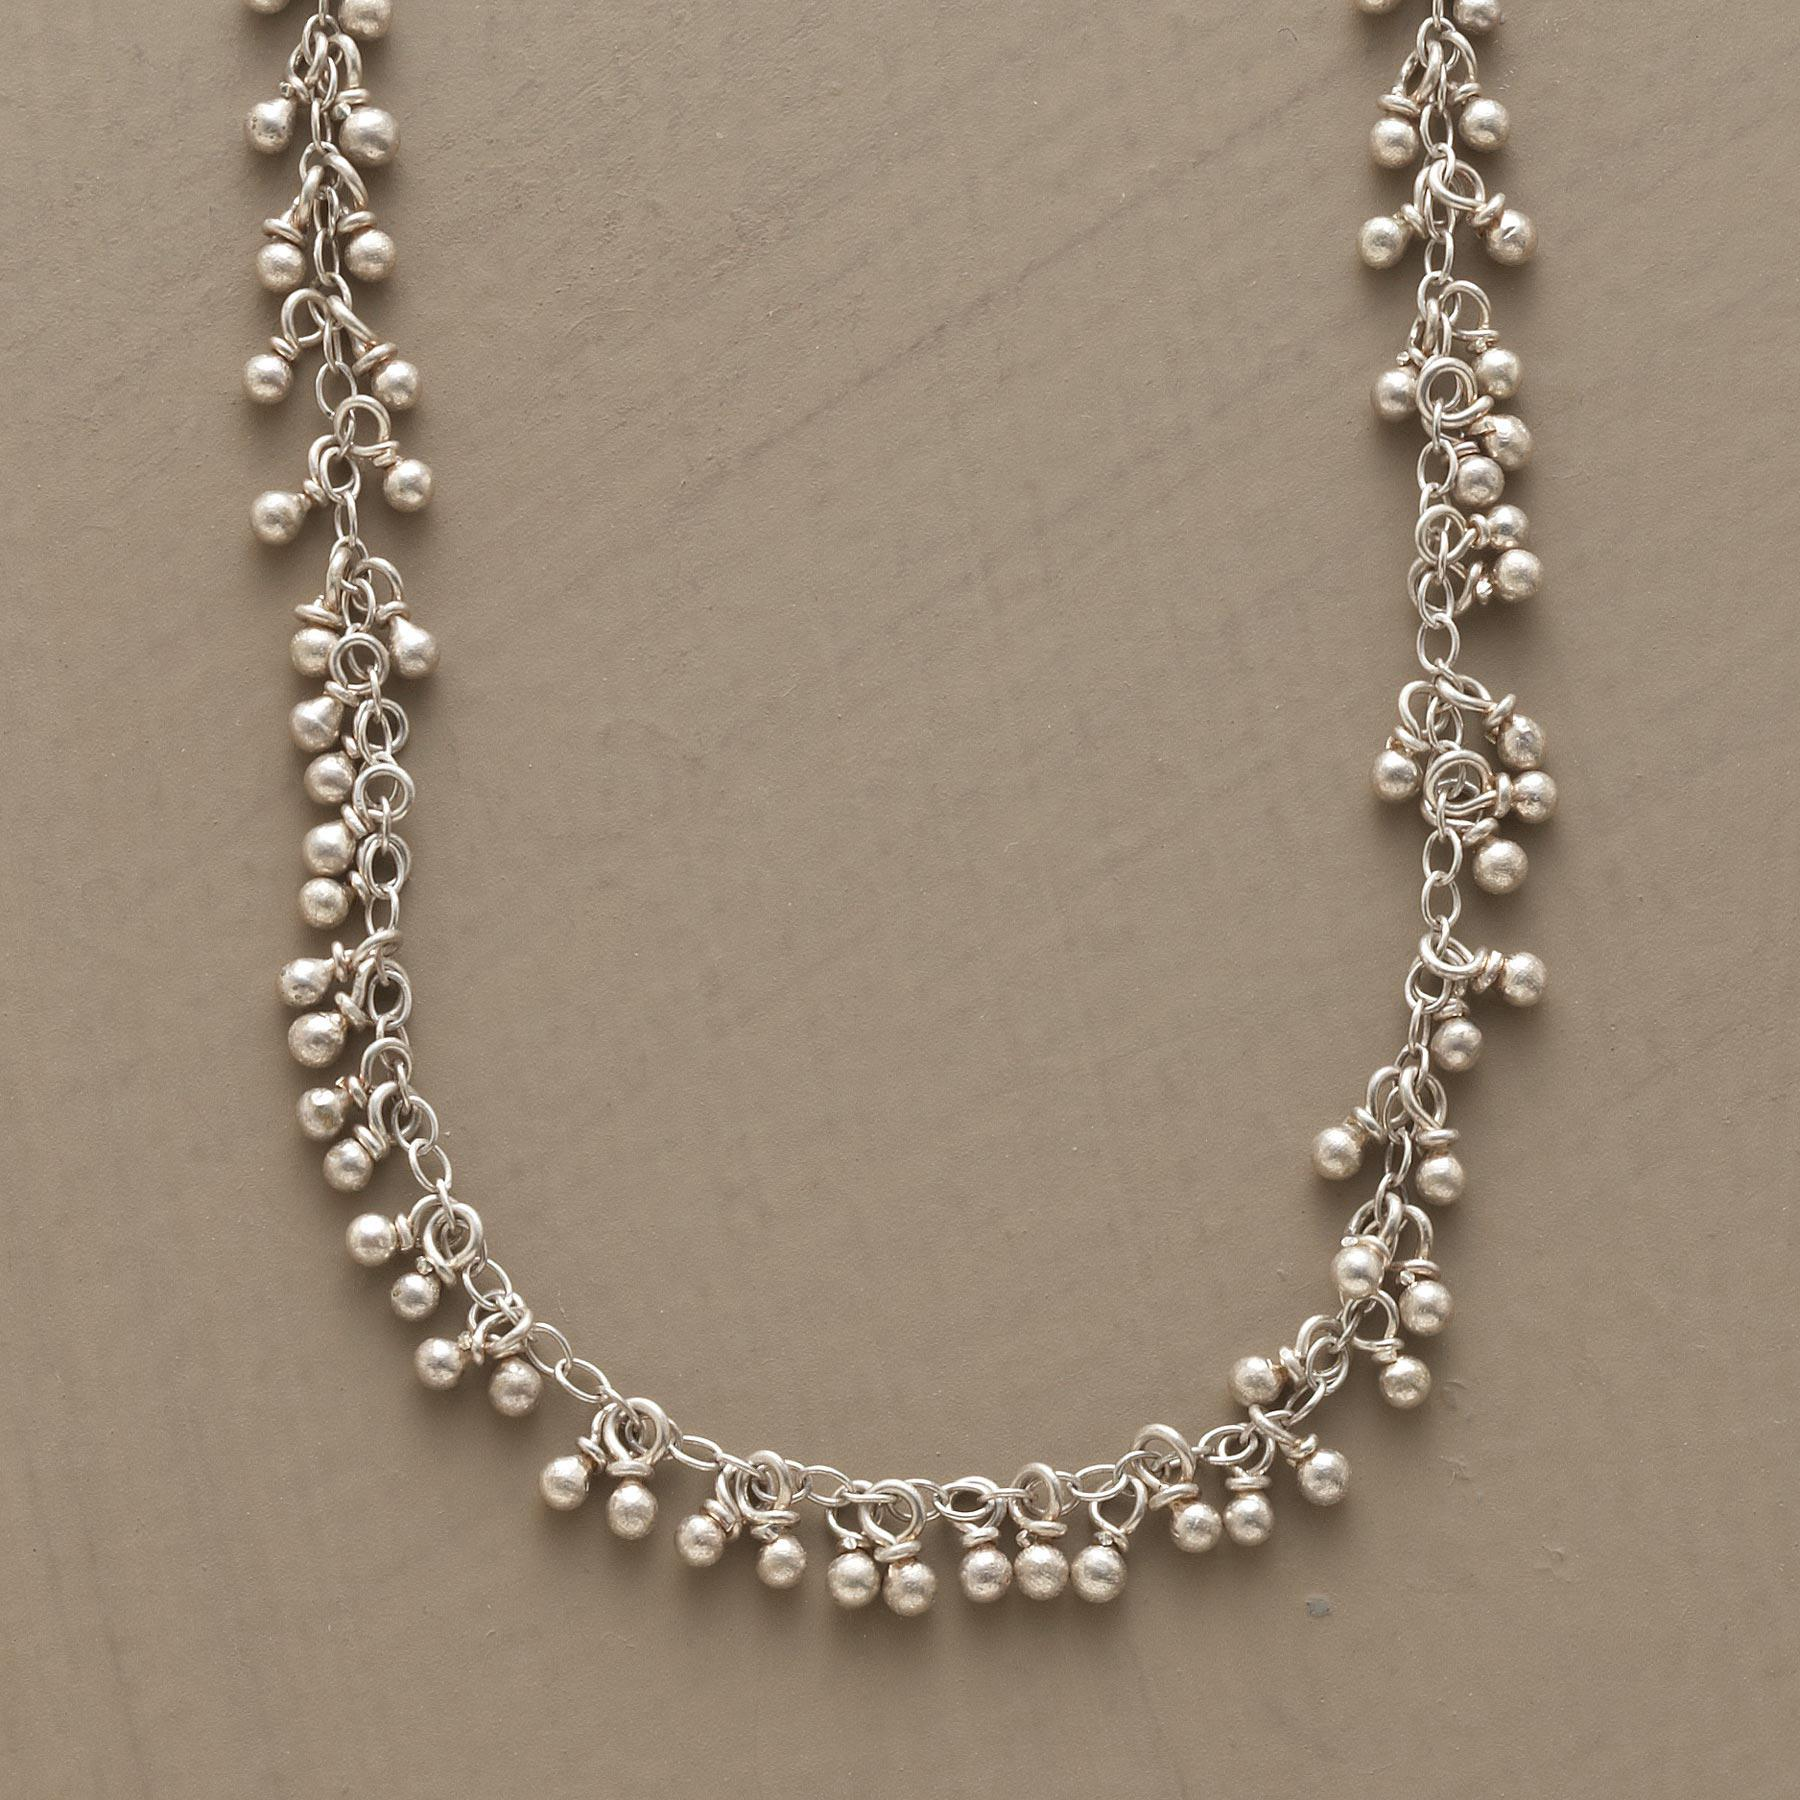 Two By Two Necklace